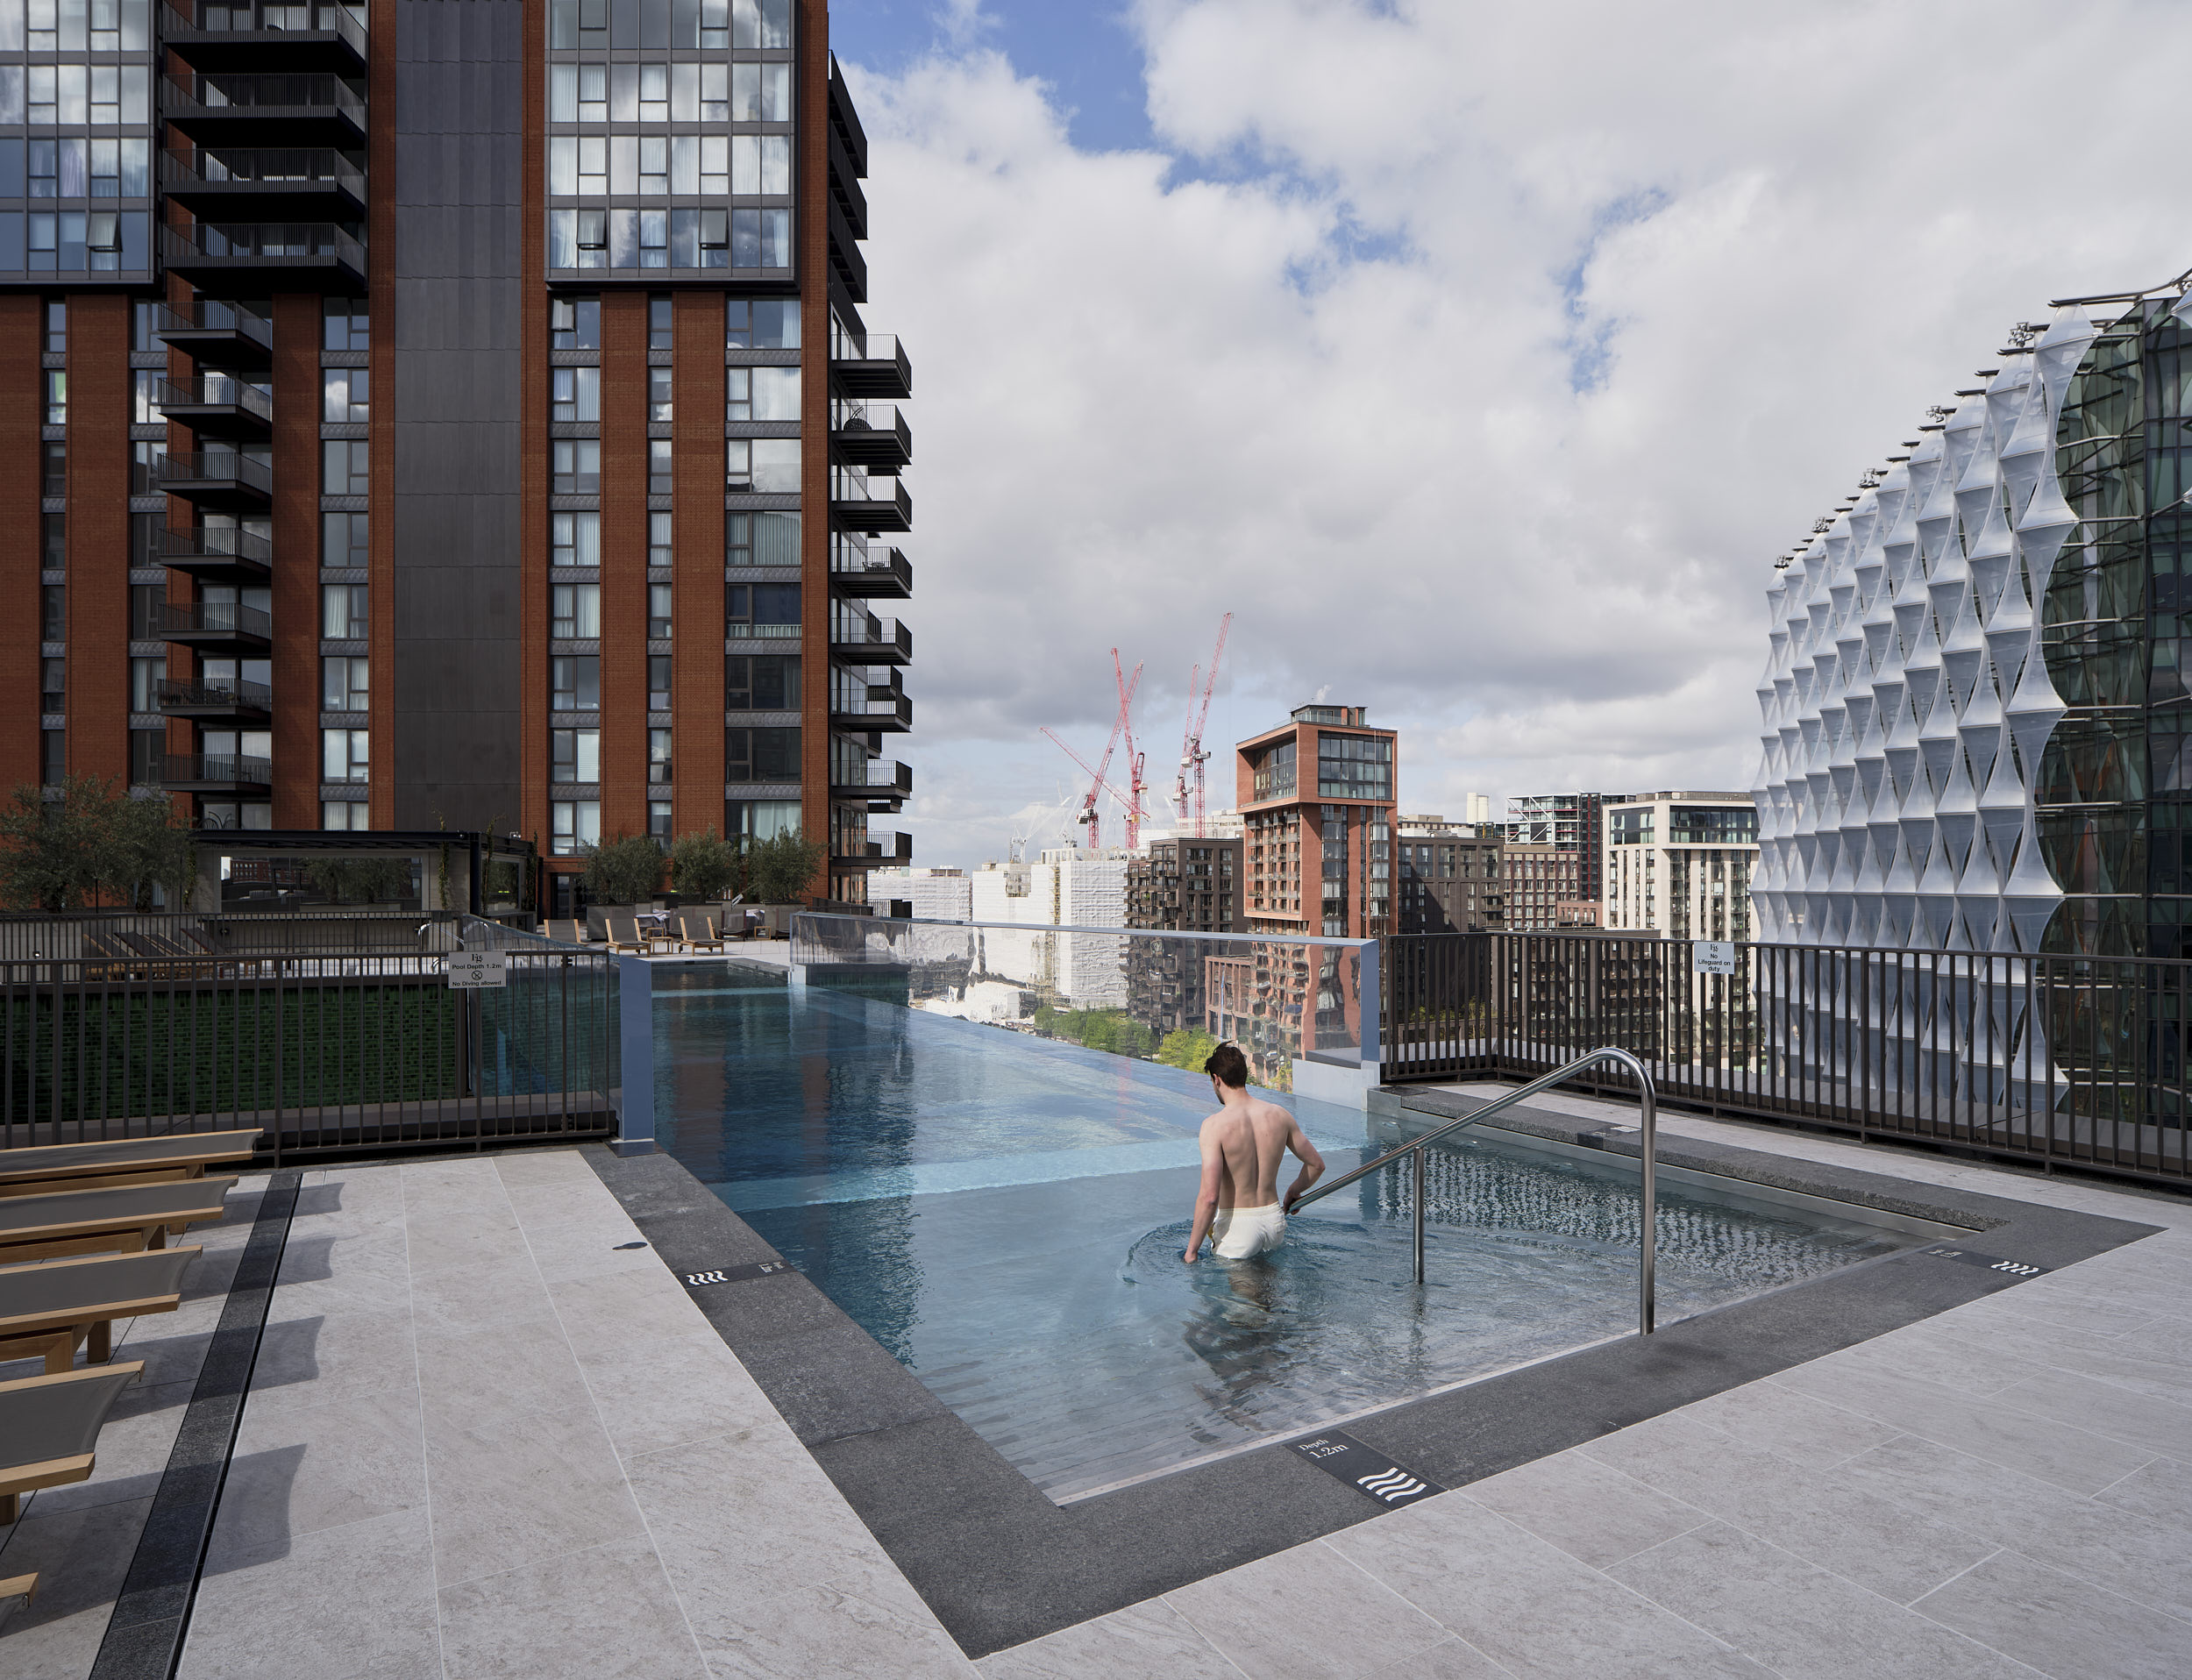 View of the pool from the poolside showing the stunning London context.